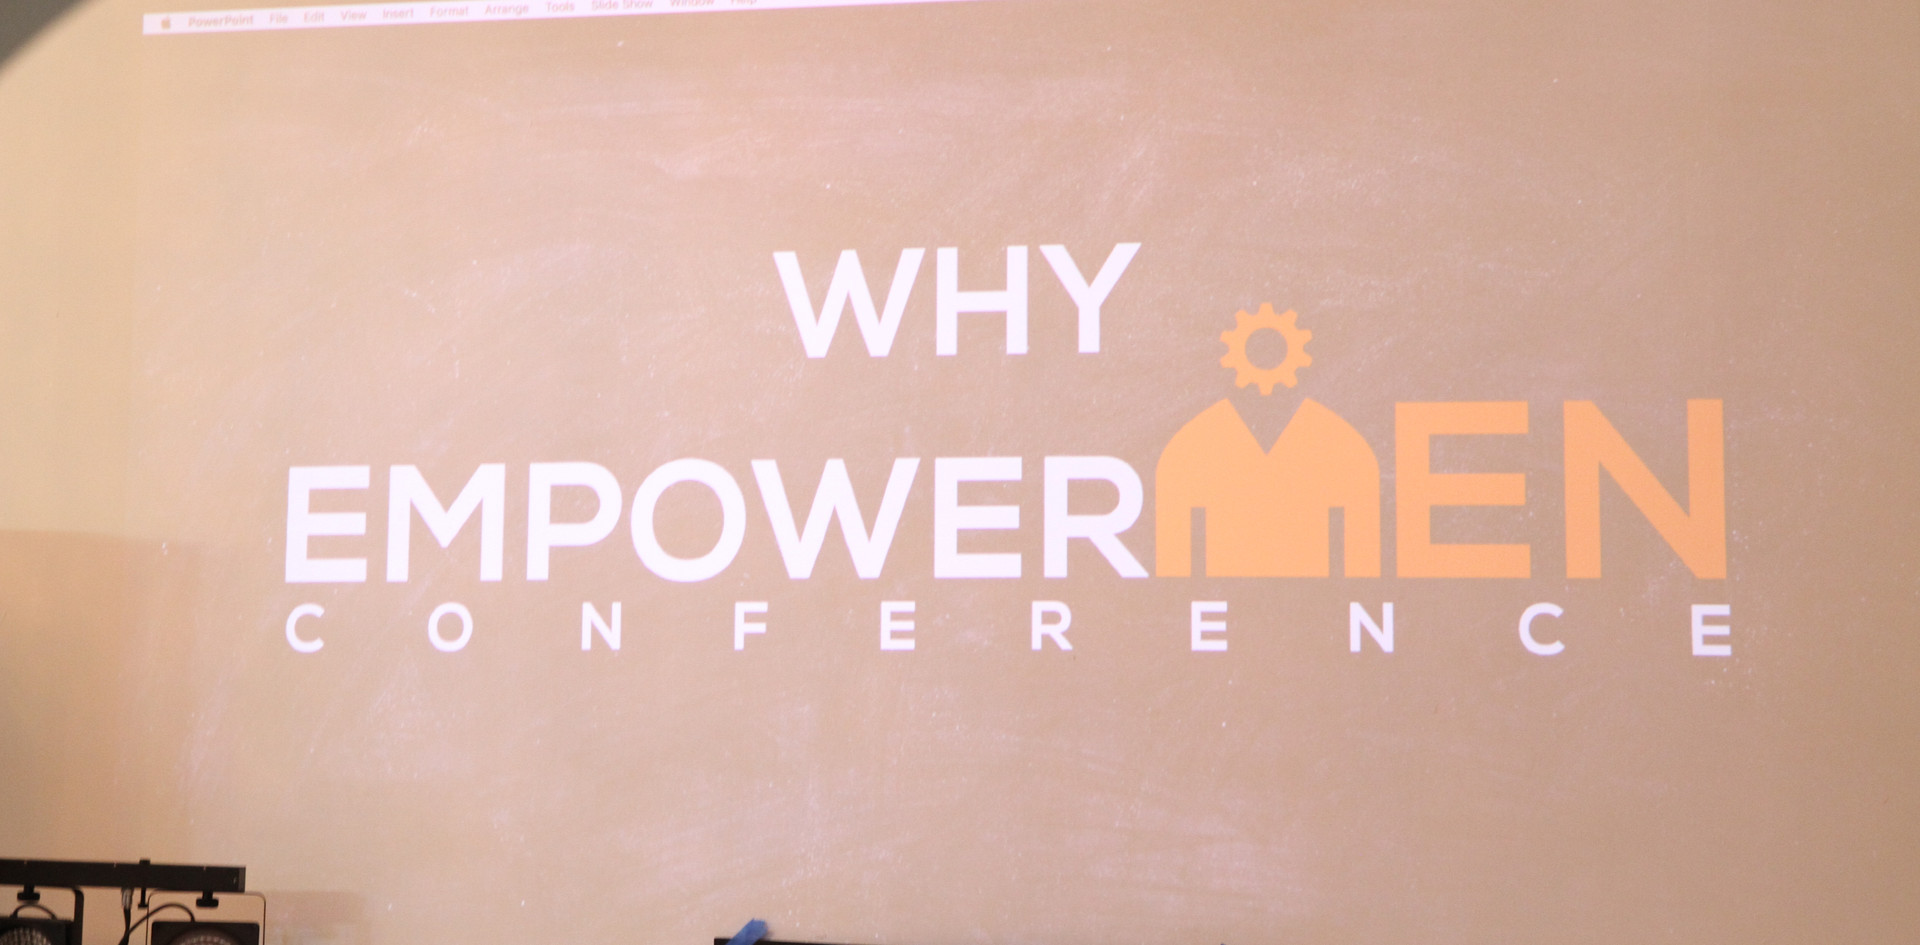 Why EmpowerMEN?